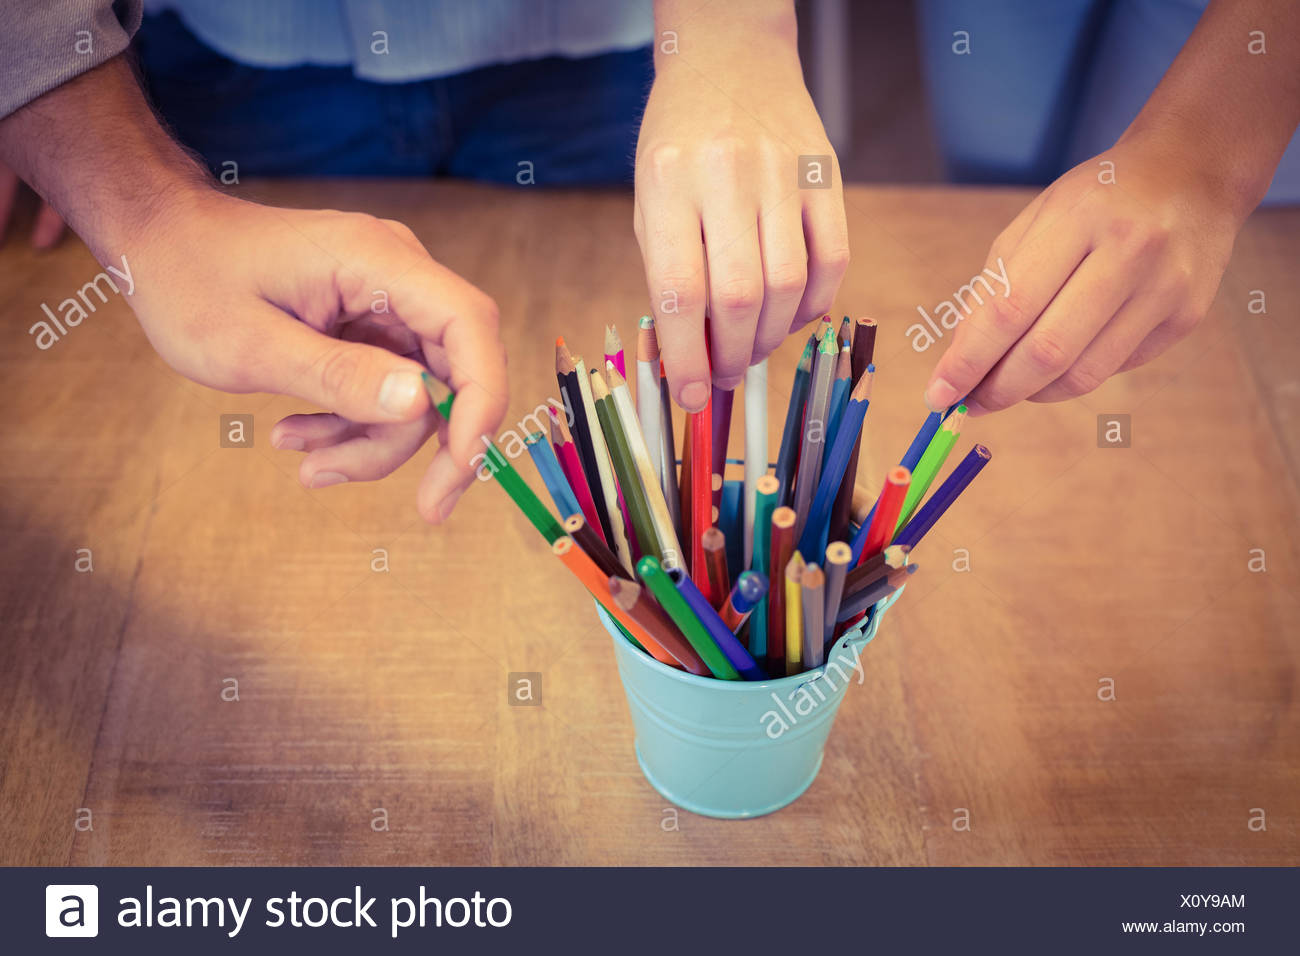 Business people choosing pencils from desk organizer - Stock Image